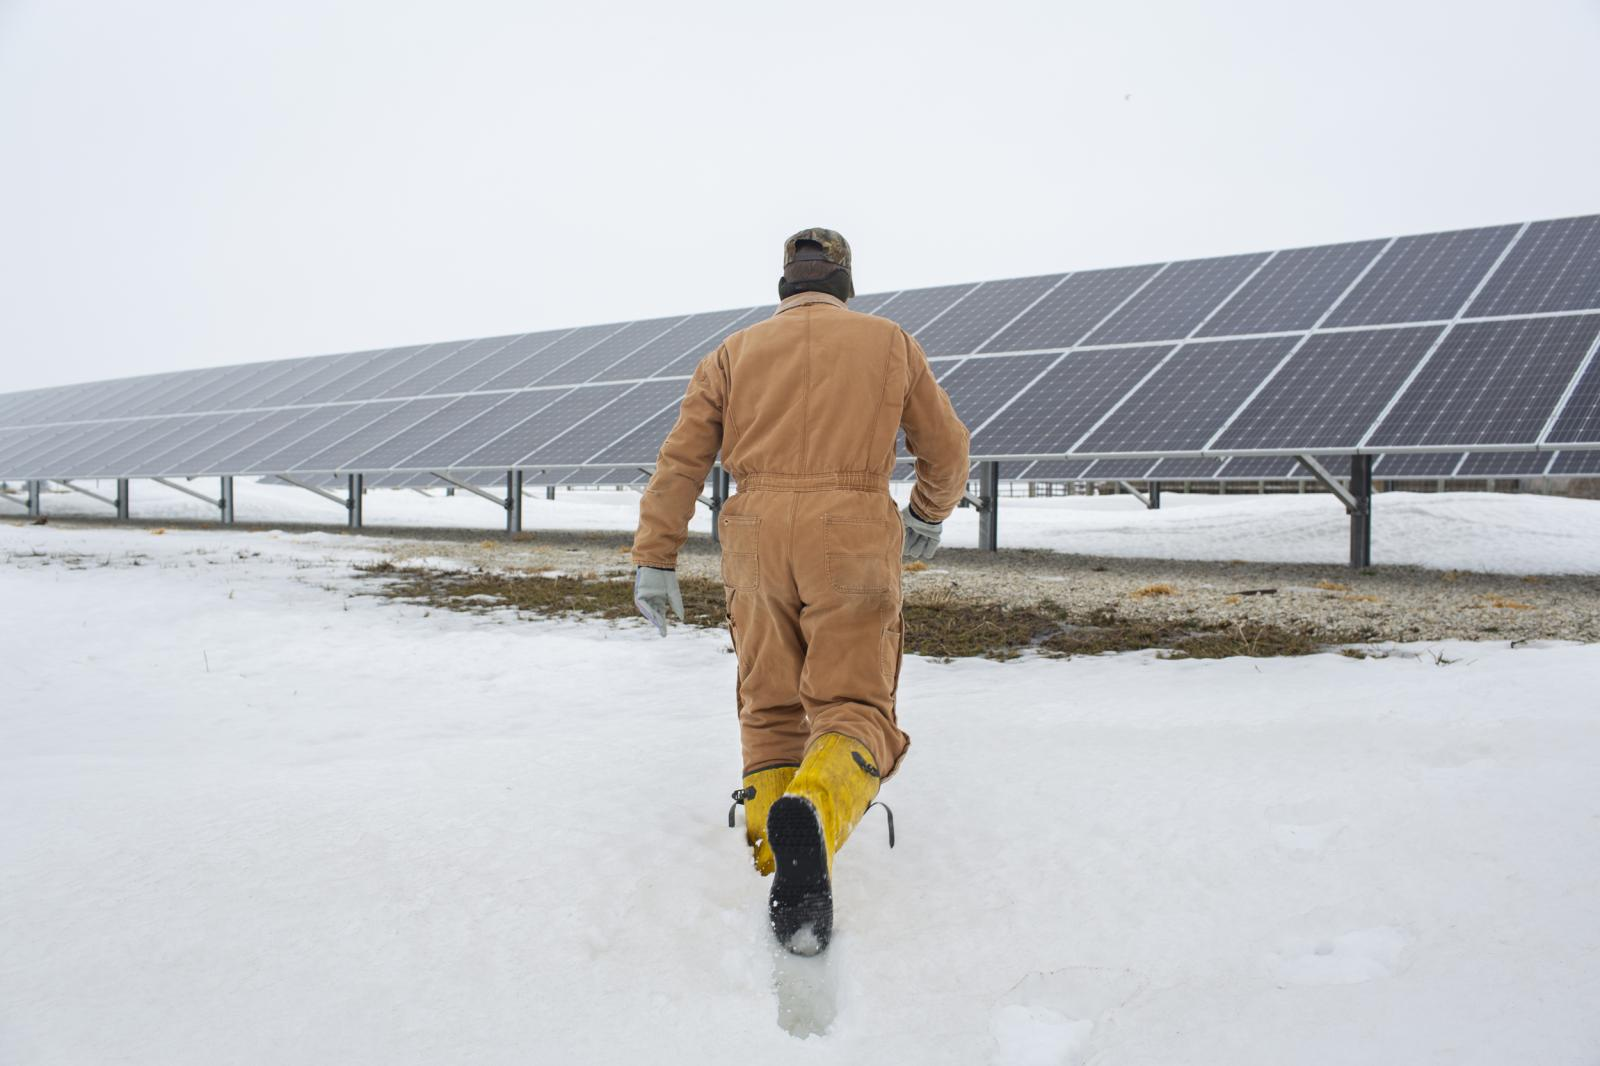 Randy DeBaillie walks toward solar panels at his farm in Orion, Illinois on February 3, 2019. Across the flatlands of Illinois, a new crop is rising among the traditional waves of grain. Hundreds have applied to host acres of solar panels on their property, a move encouraged by a state requiring that renewable resources provide 25 percent of Illinois power by 2025.